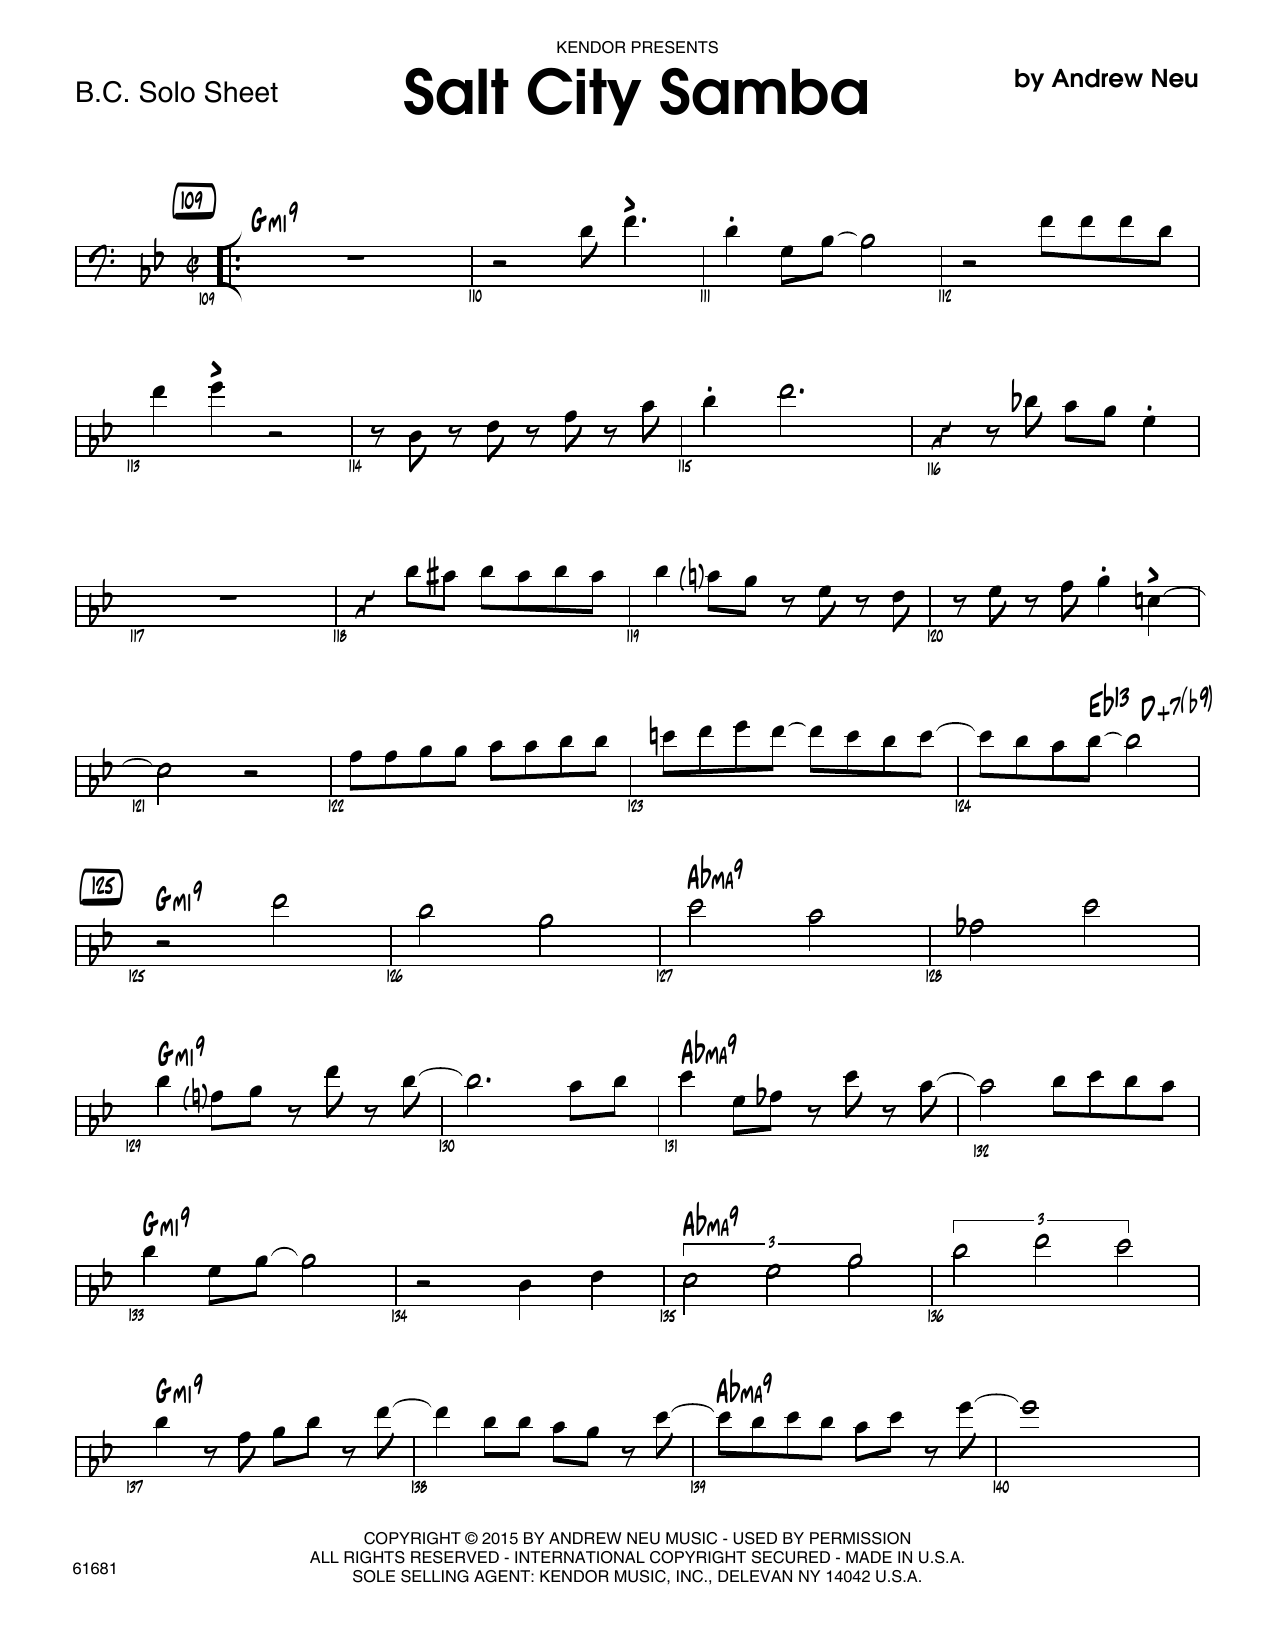 Salt City Samba - Solo Sheet - Trombone